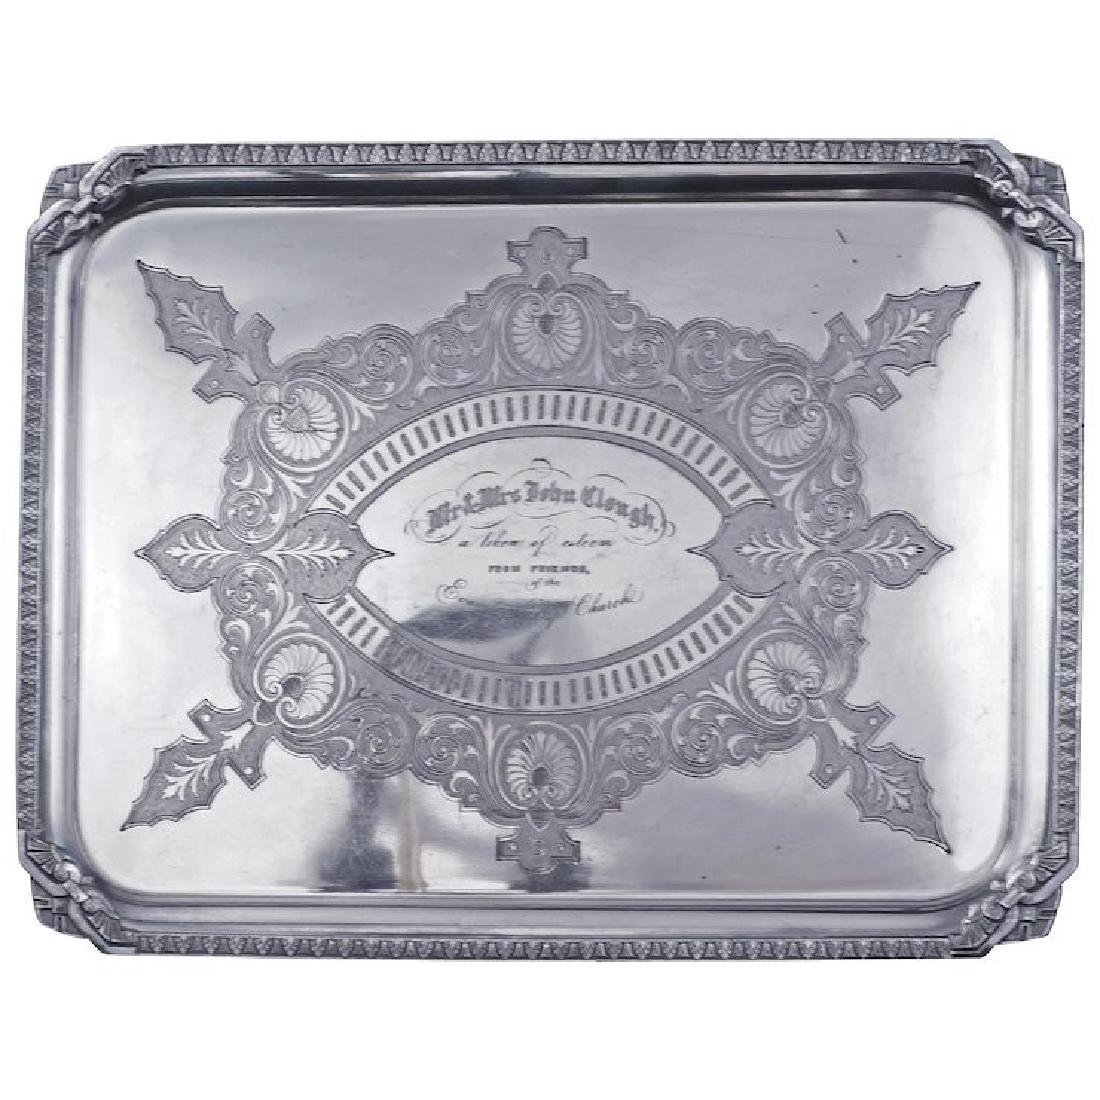 Victorian presentation silver plate tray late 19th